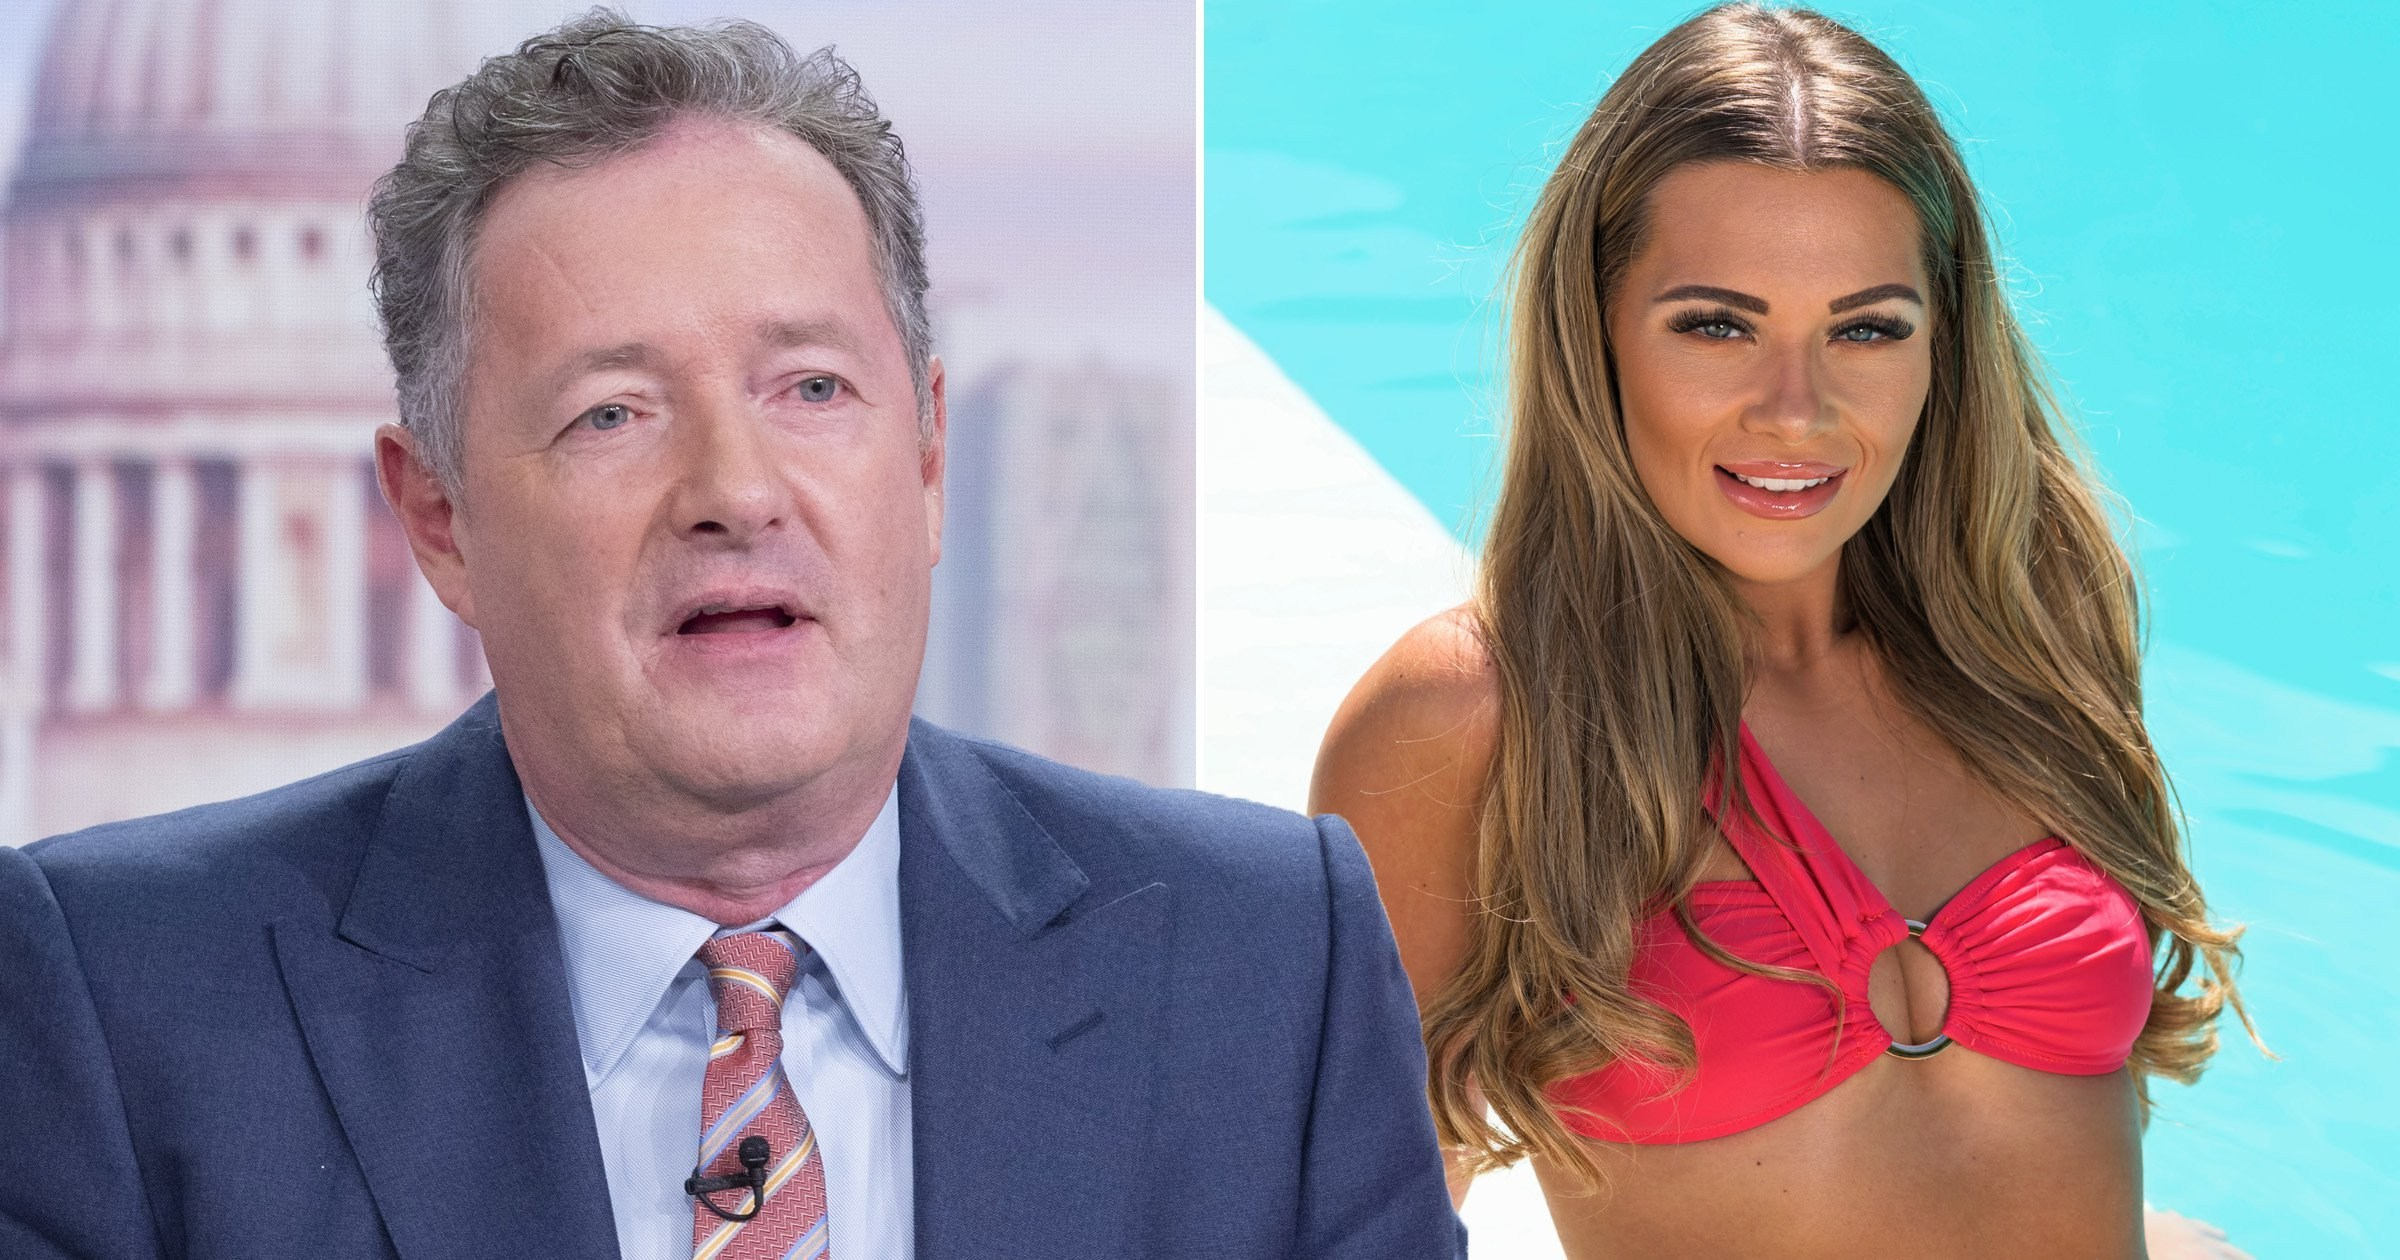 Piers Morgan says it's 'awks' that Love Island's Shaughna likes him as he brands contestants 'brain-dead zombies'